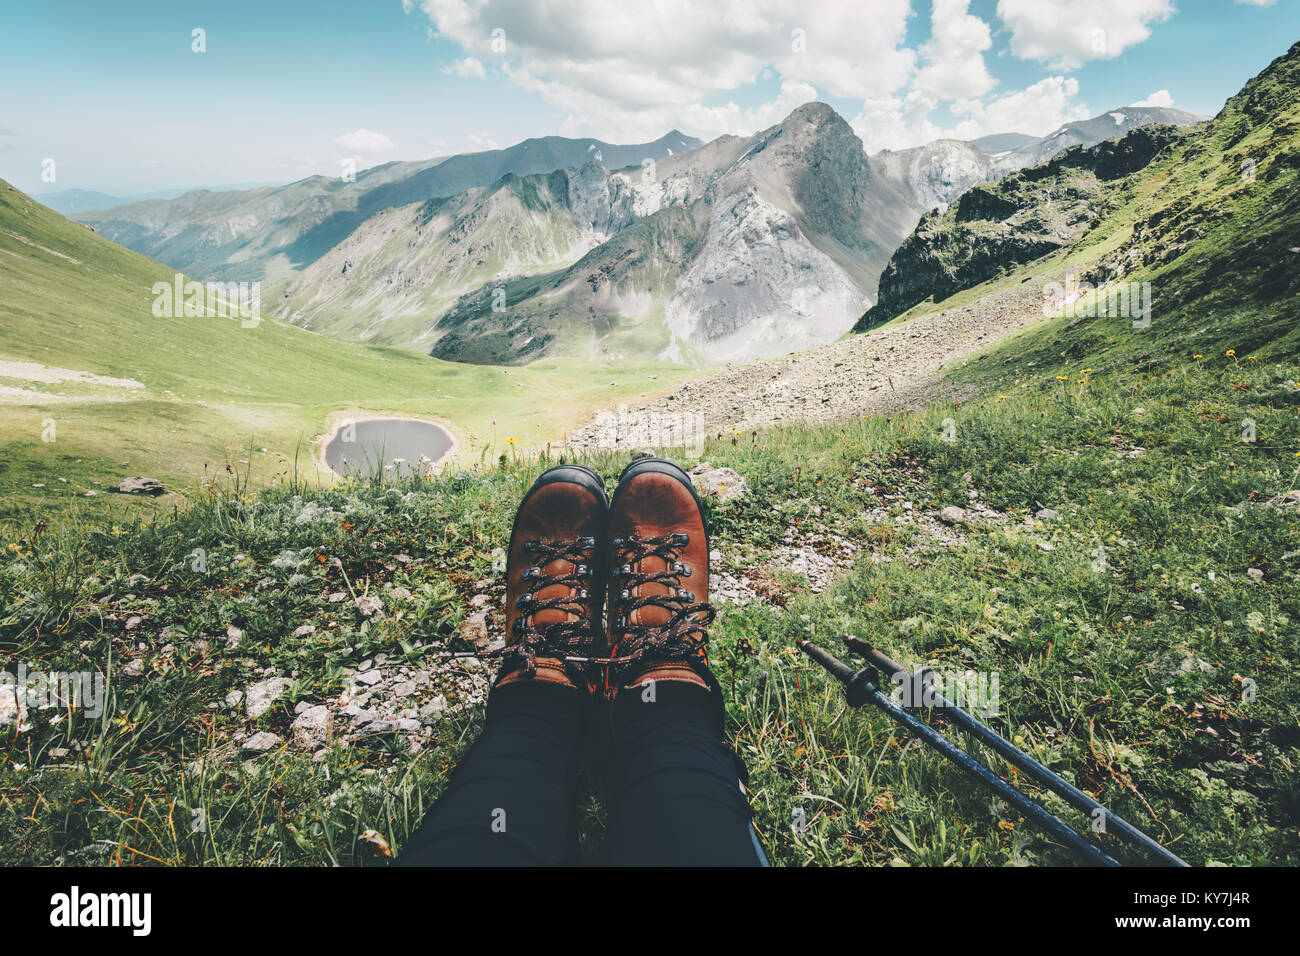 Feet trekking boots and mountains landscape on background Travel Lifestyle adventure vacations concept - Stock Image